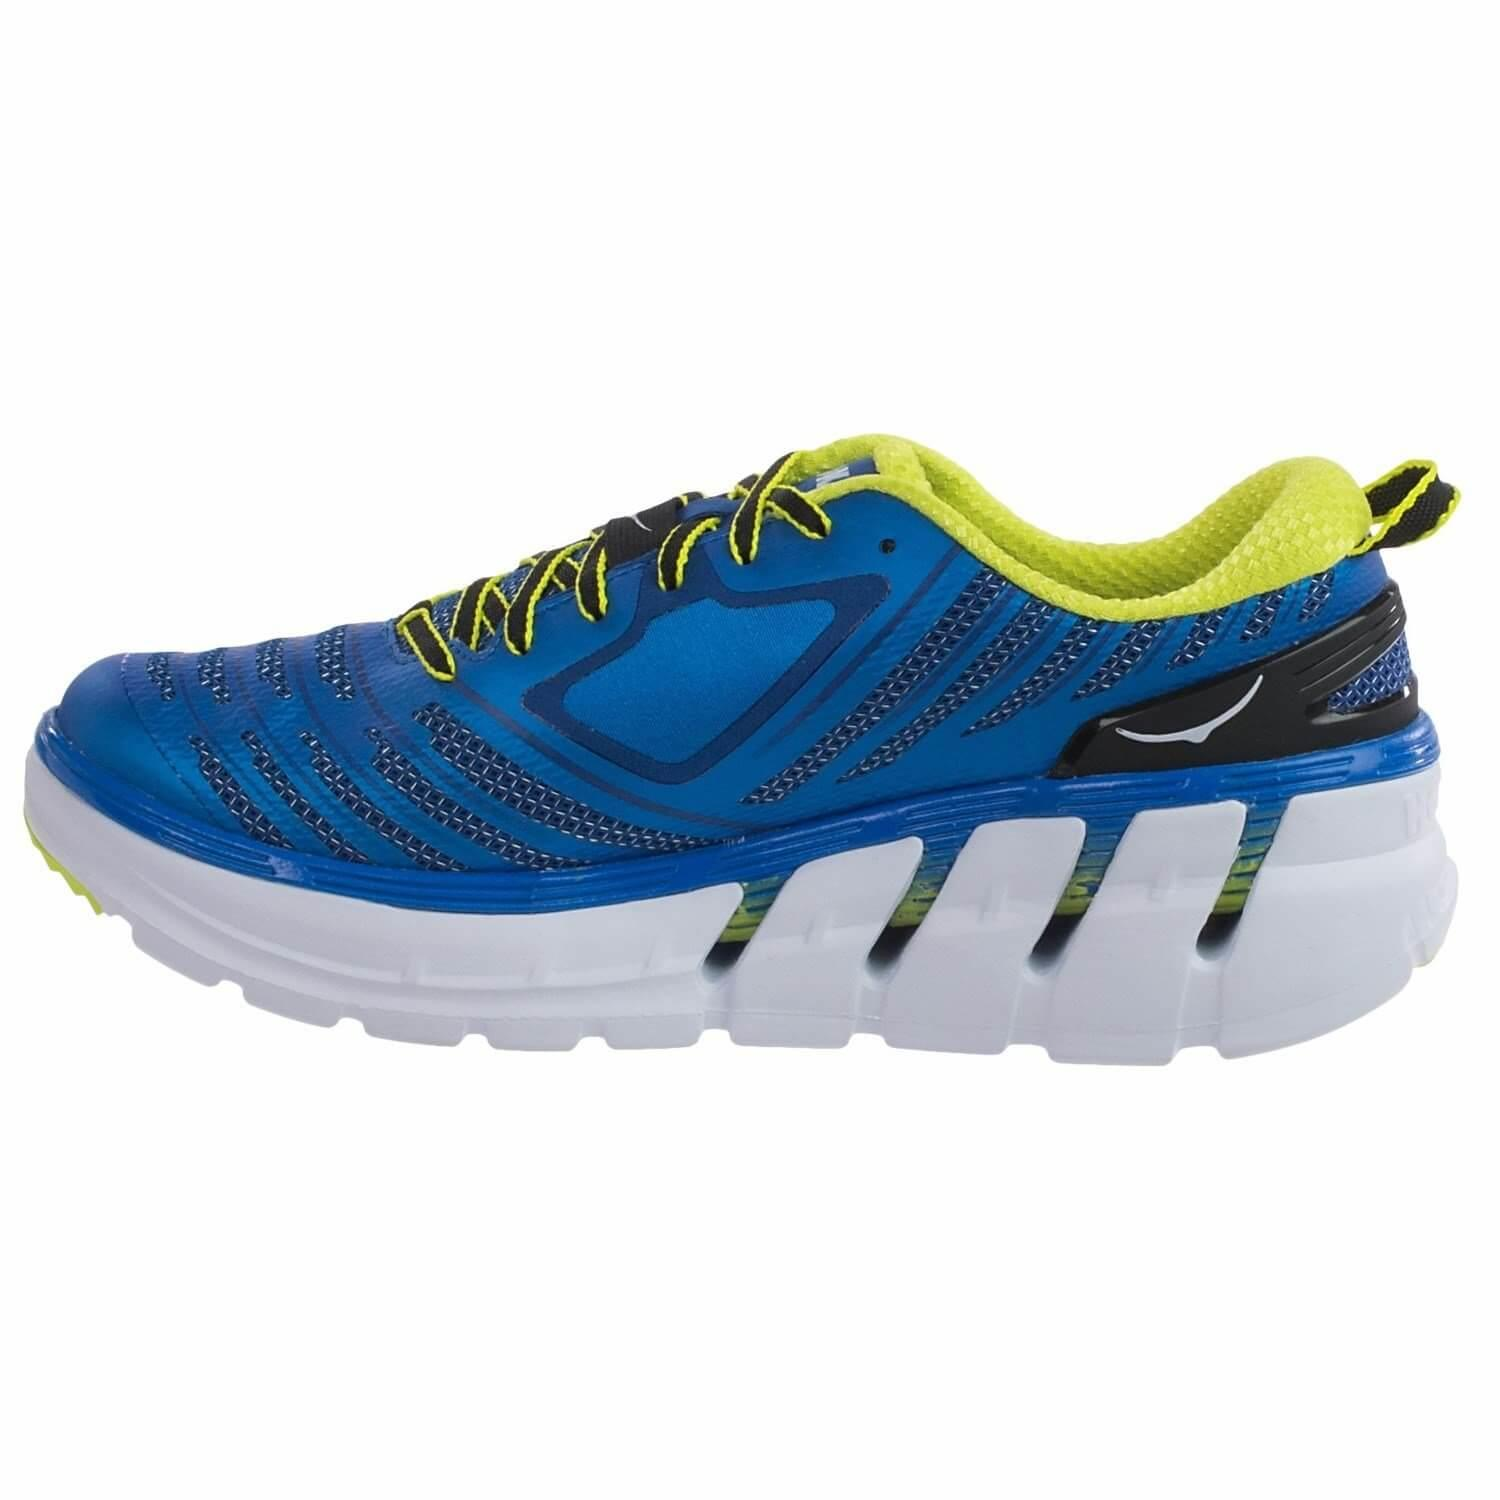 Hoka One One Vanquish right to left